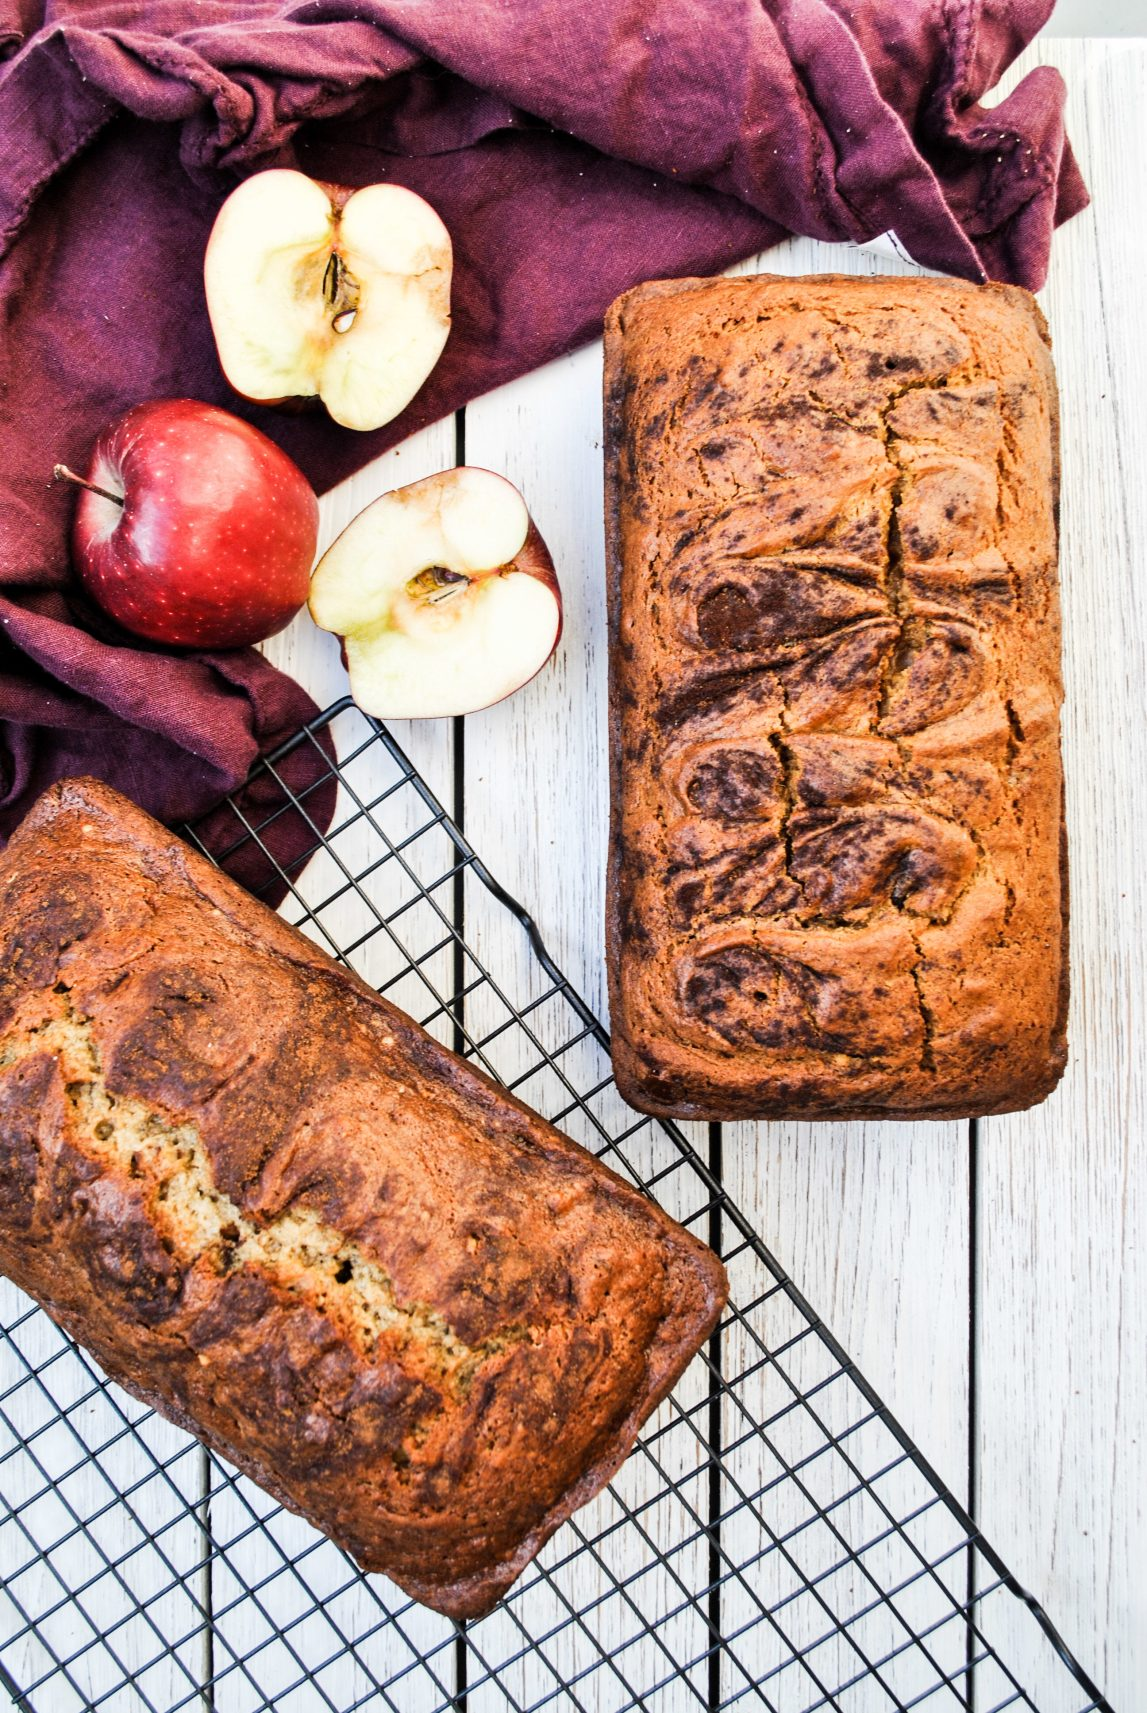 Lifestyle Blogger Chocolate and Lace shares her recipe for Pumpkin Swirl Bread.